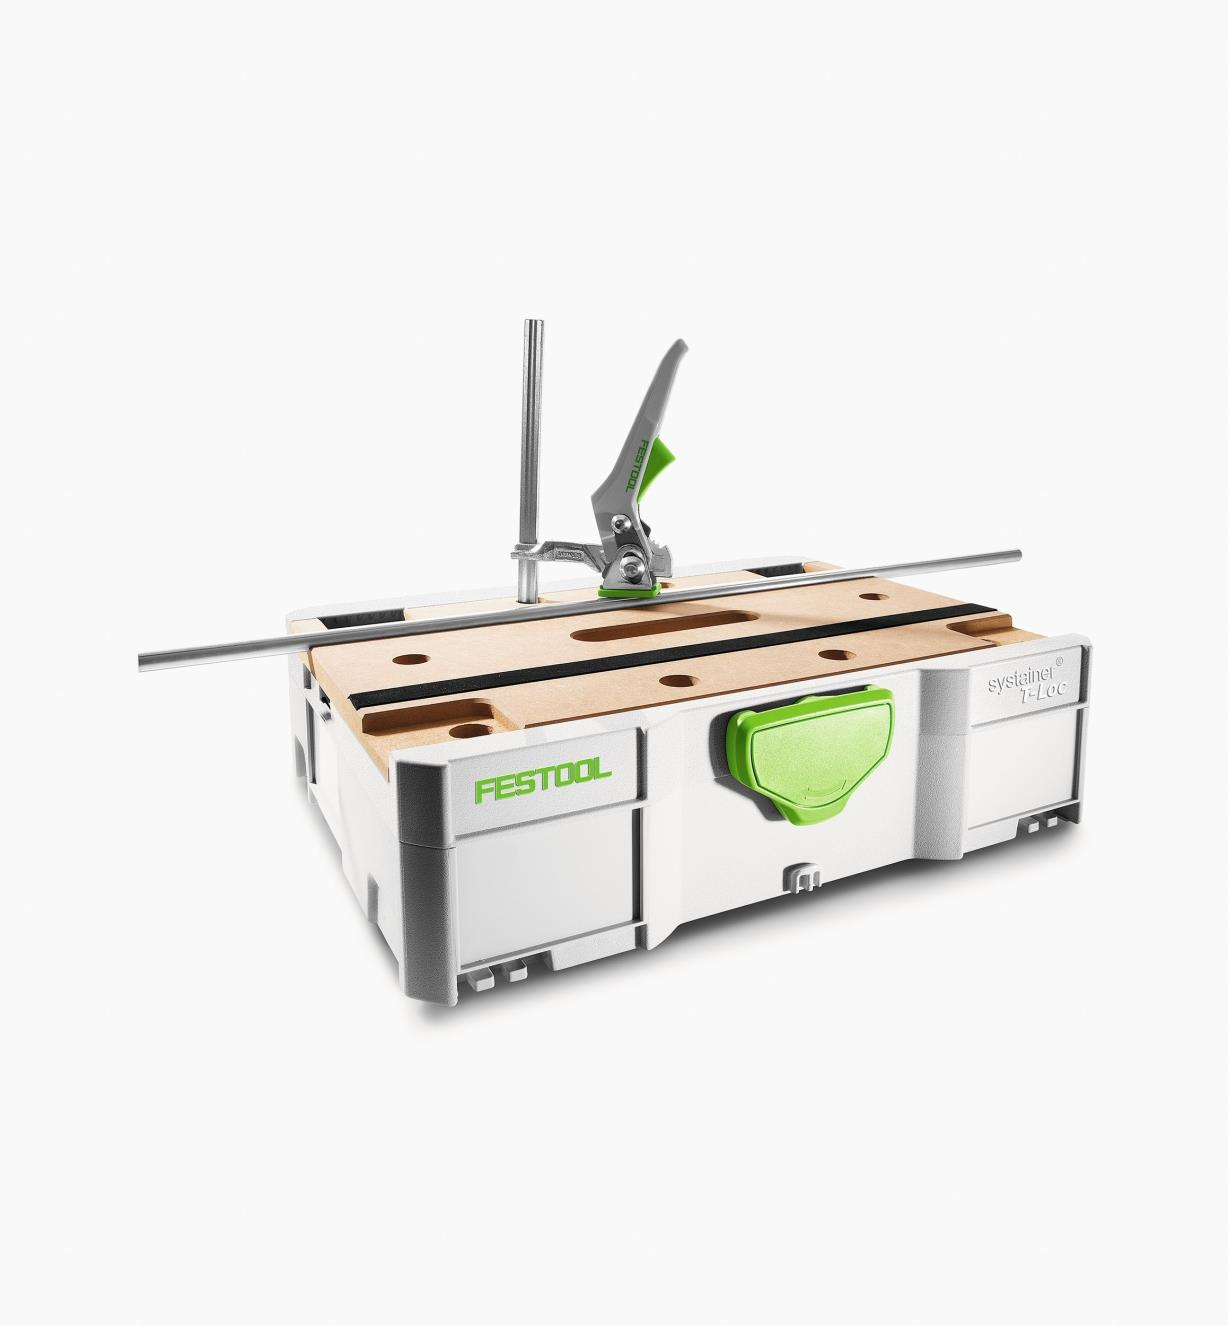 Sys-MFT Tabletop Systainer in use with Festool Quick Clamp